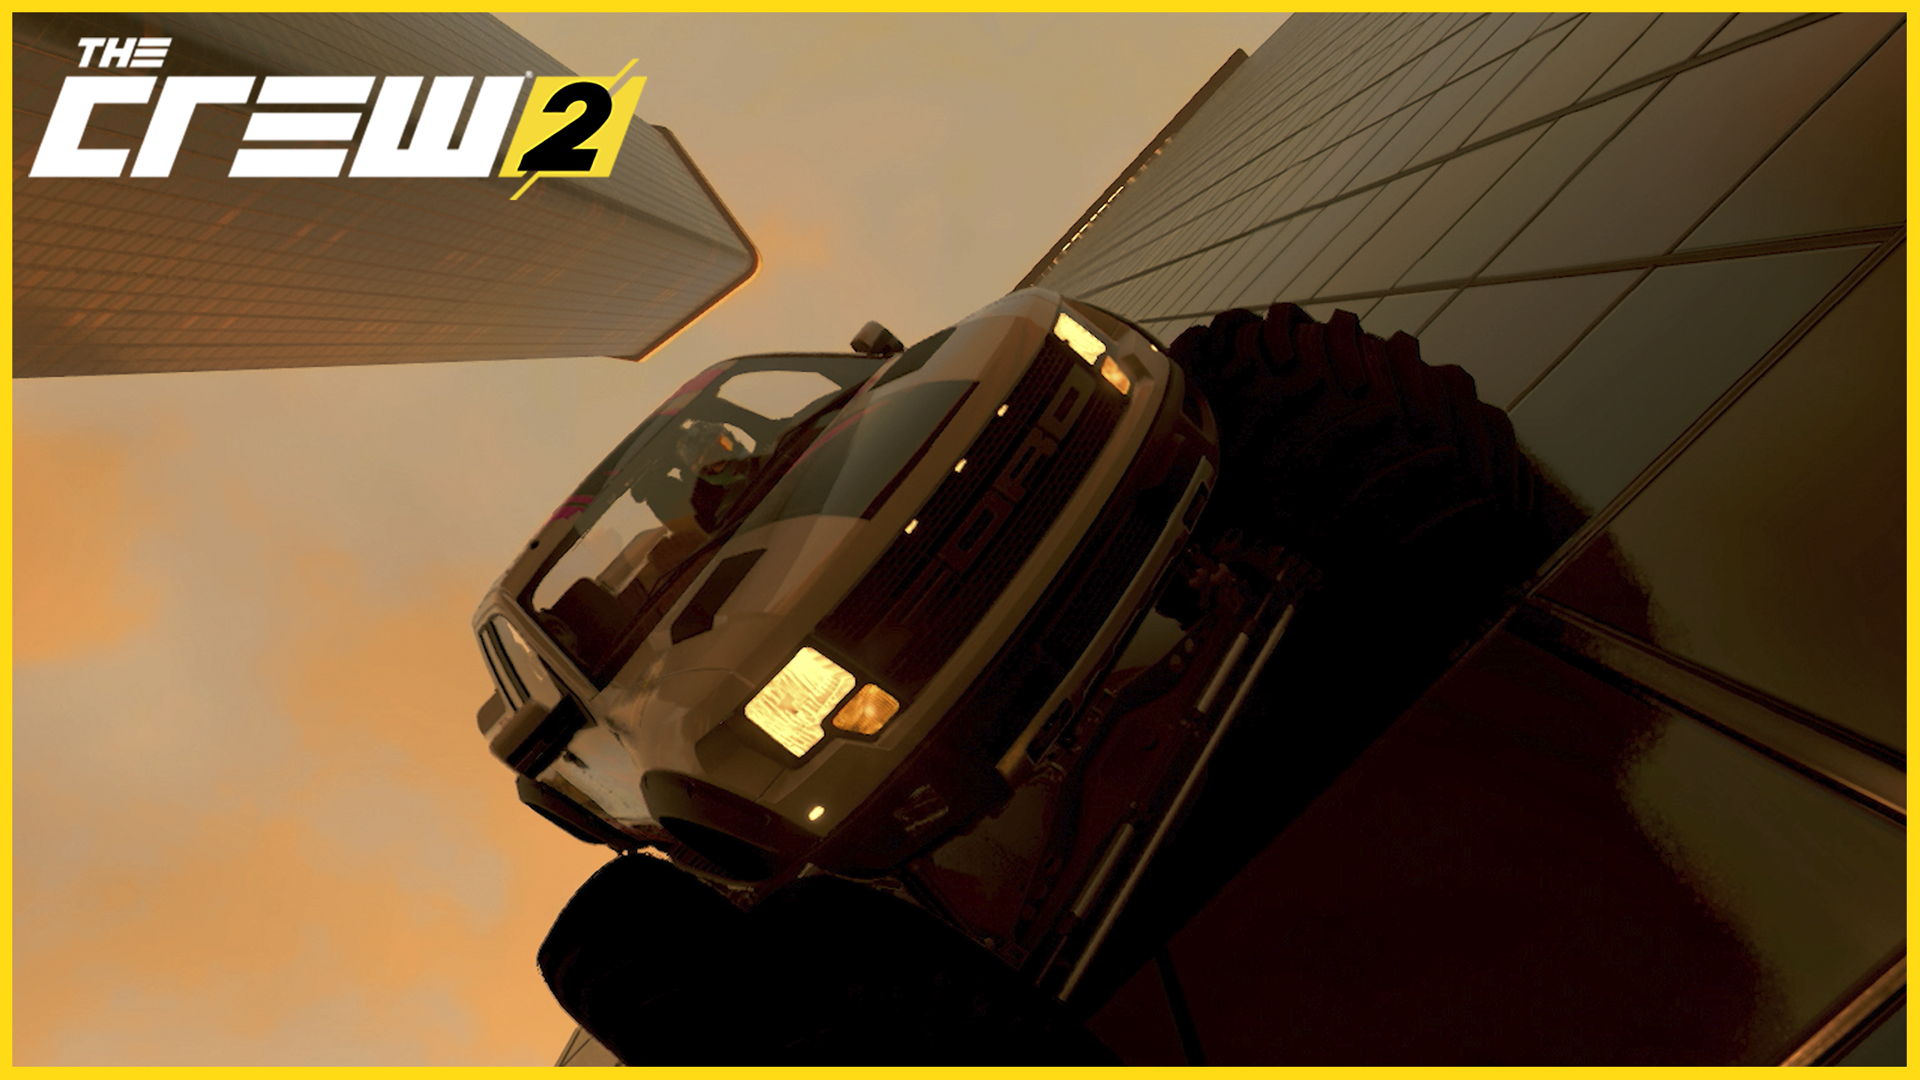 The Crew 2 A Ford Monster Truck Rides On Side Of Skyscraper